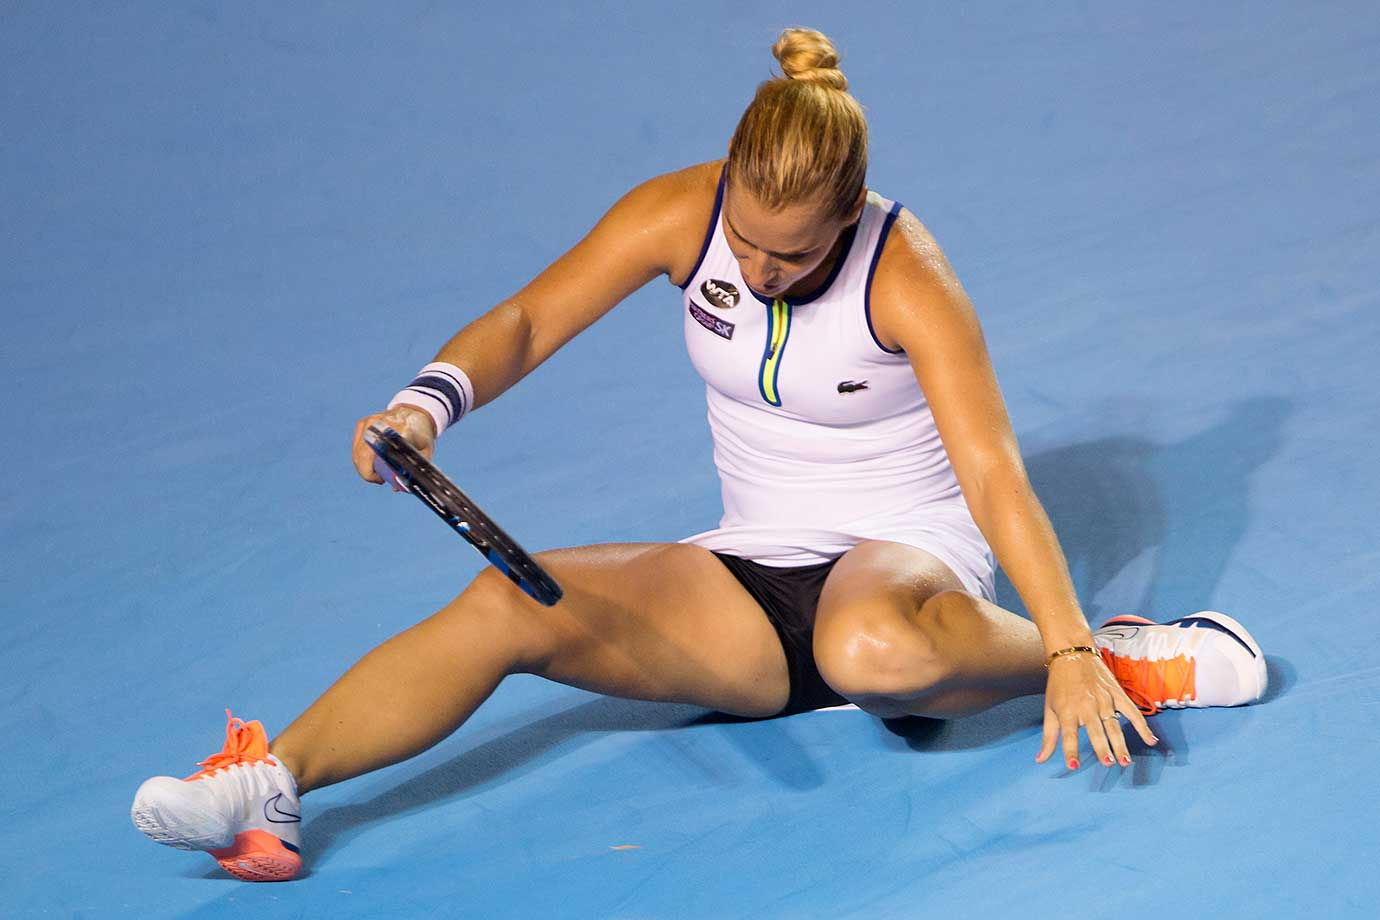 Dominika Cibulkova of Slovakia gets up while playing Sloane Stephens in the final of the Mexico Open in Acapulco.